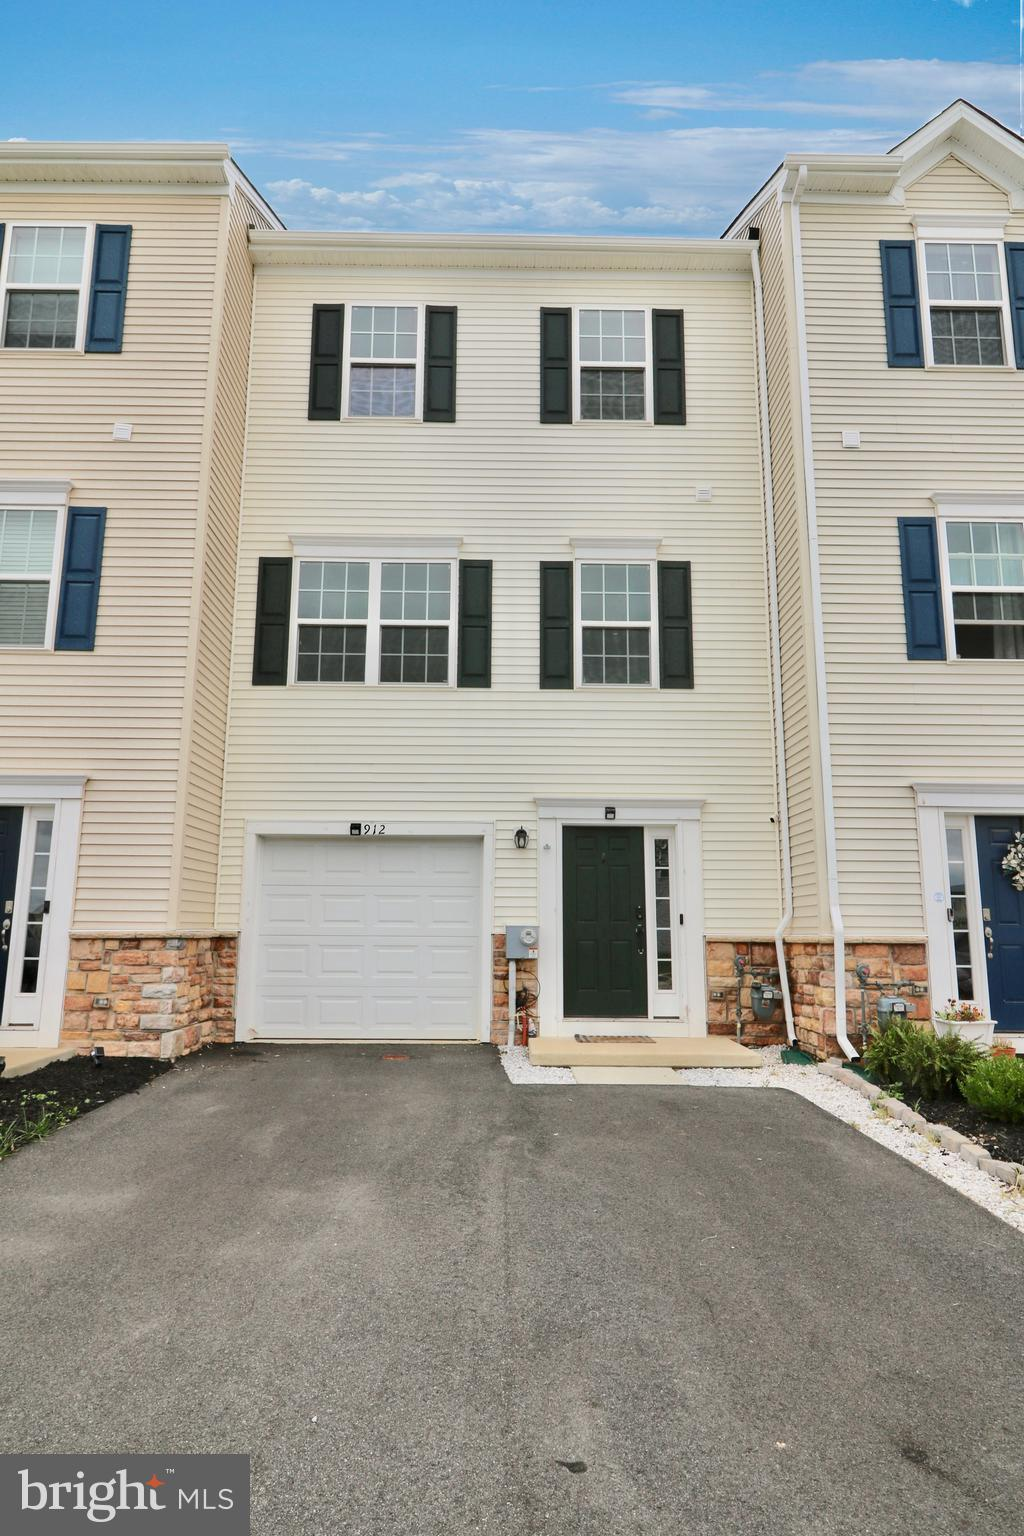 Beautiful townhome with 3 bedrooms, 2.5 baths, garage and a flex room on the first floor that can be used as a family room, Media Room, 4th bedroom or home office.